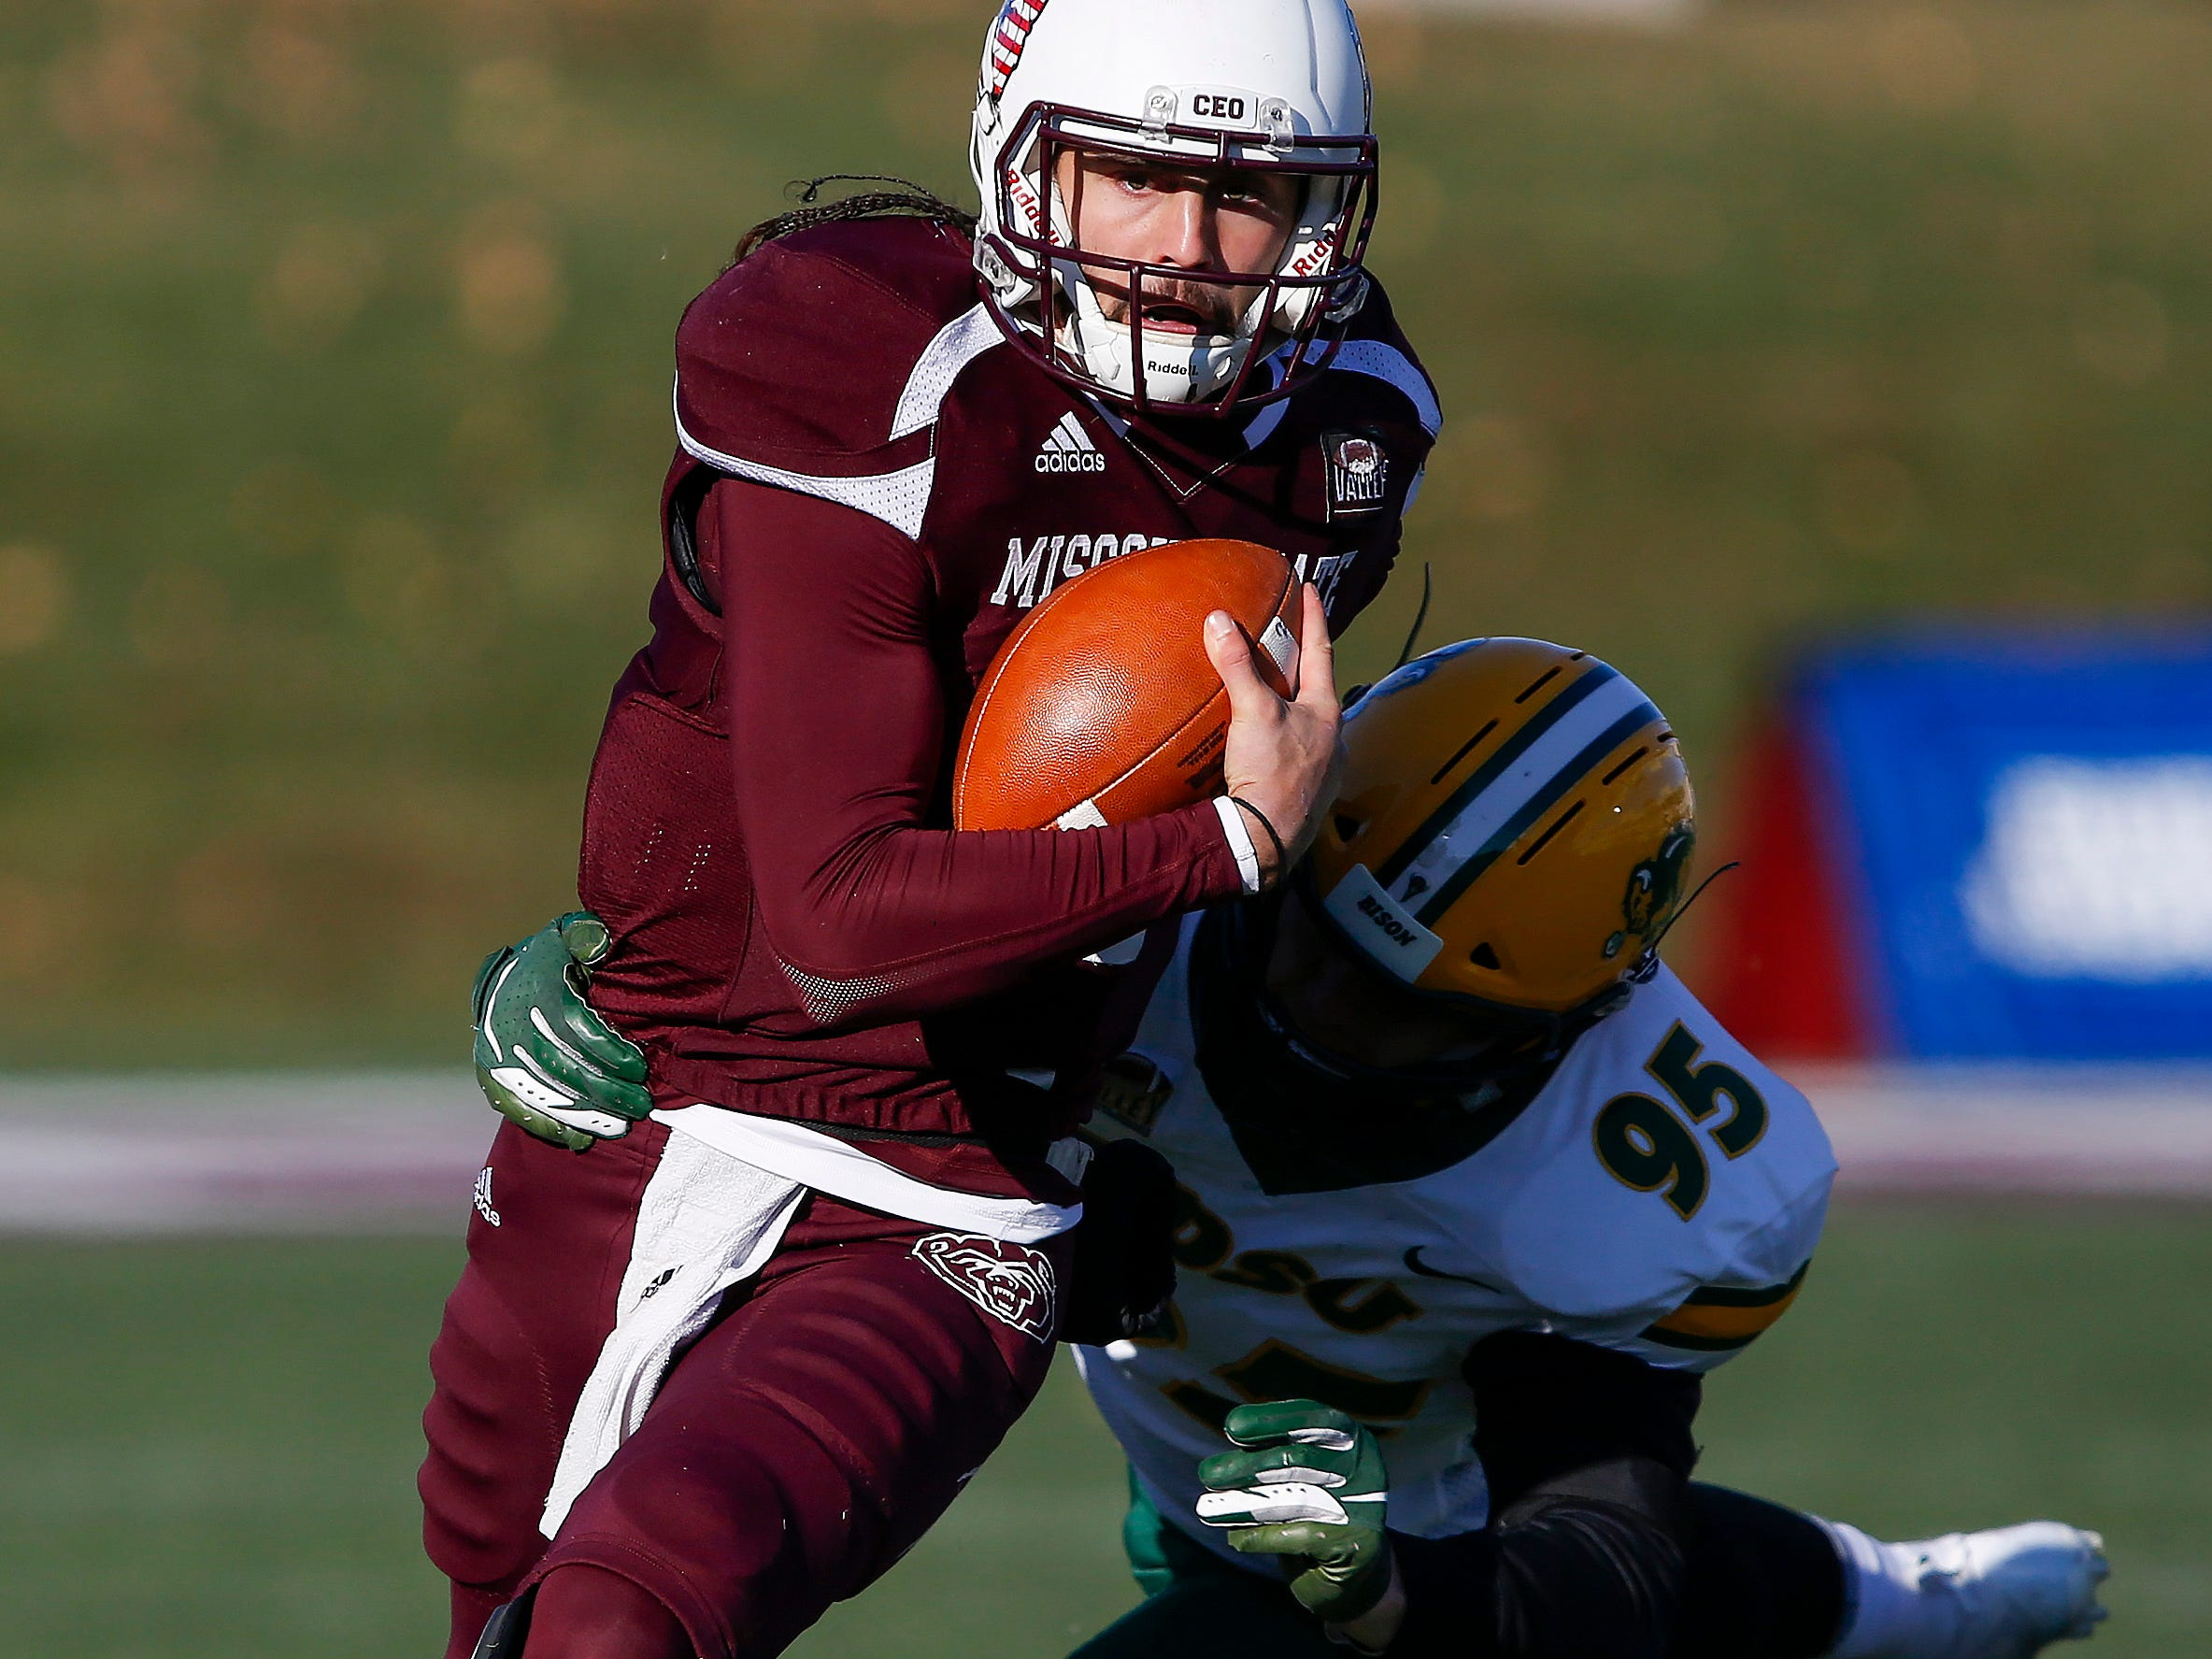 Missouri State University took on North Dakota State in their last home game of the season at Plaster Stadium on Saturday, Nov. 10, 2018.